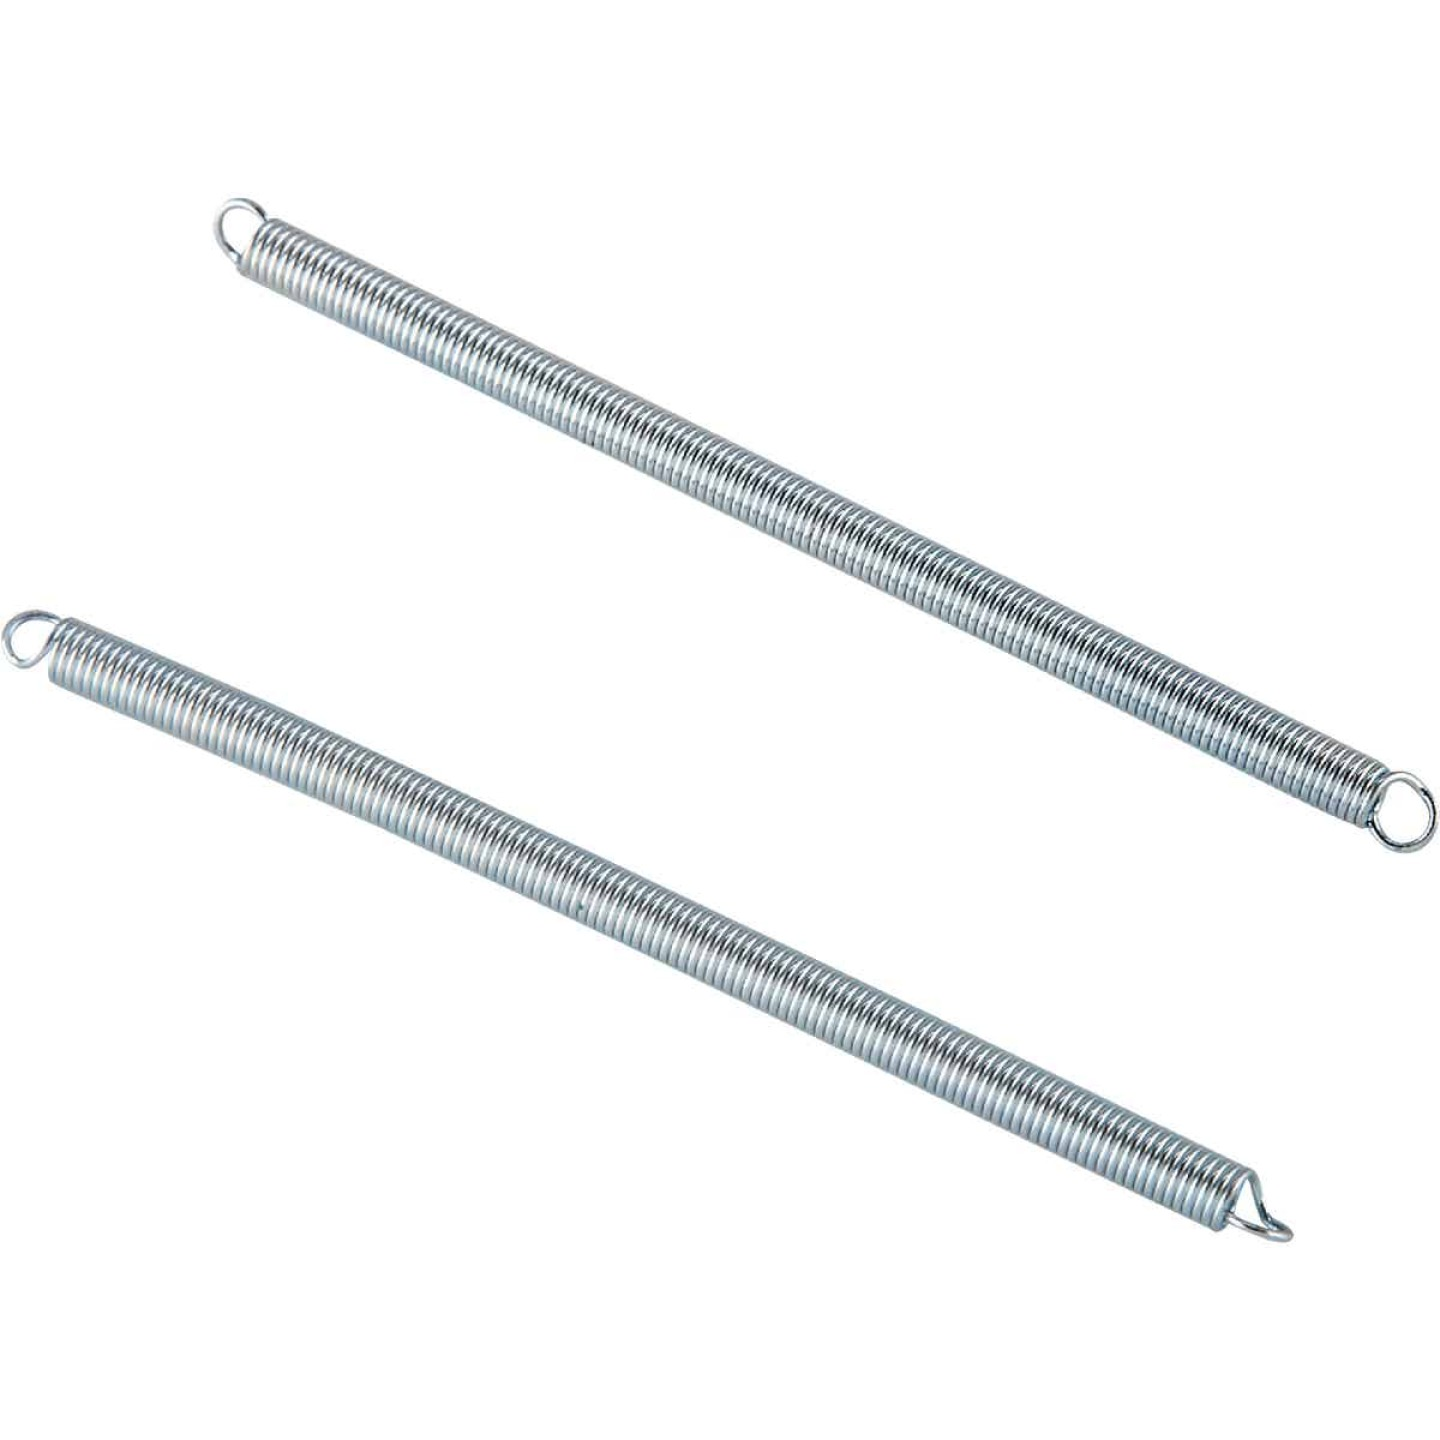 Century Spring 1-1/2 In. x 11/32 In. Extension Spring (2 Count) Image 1